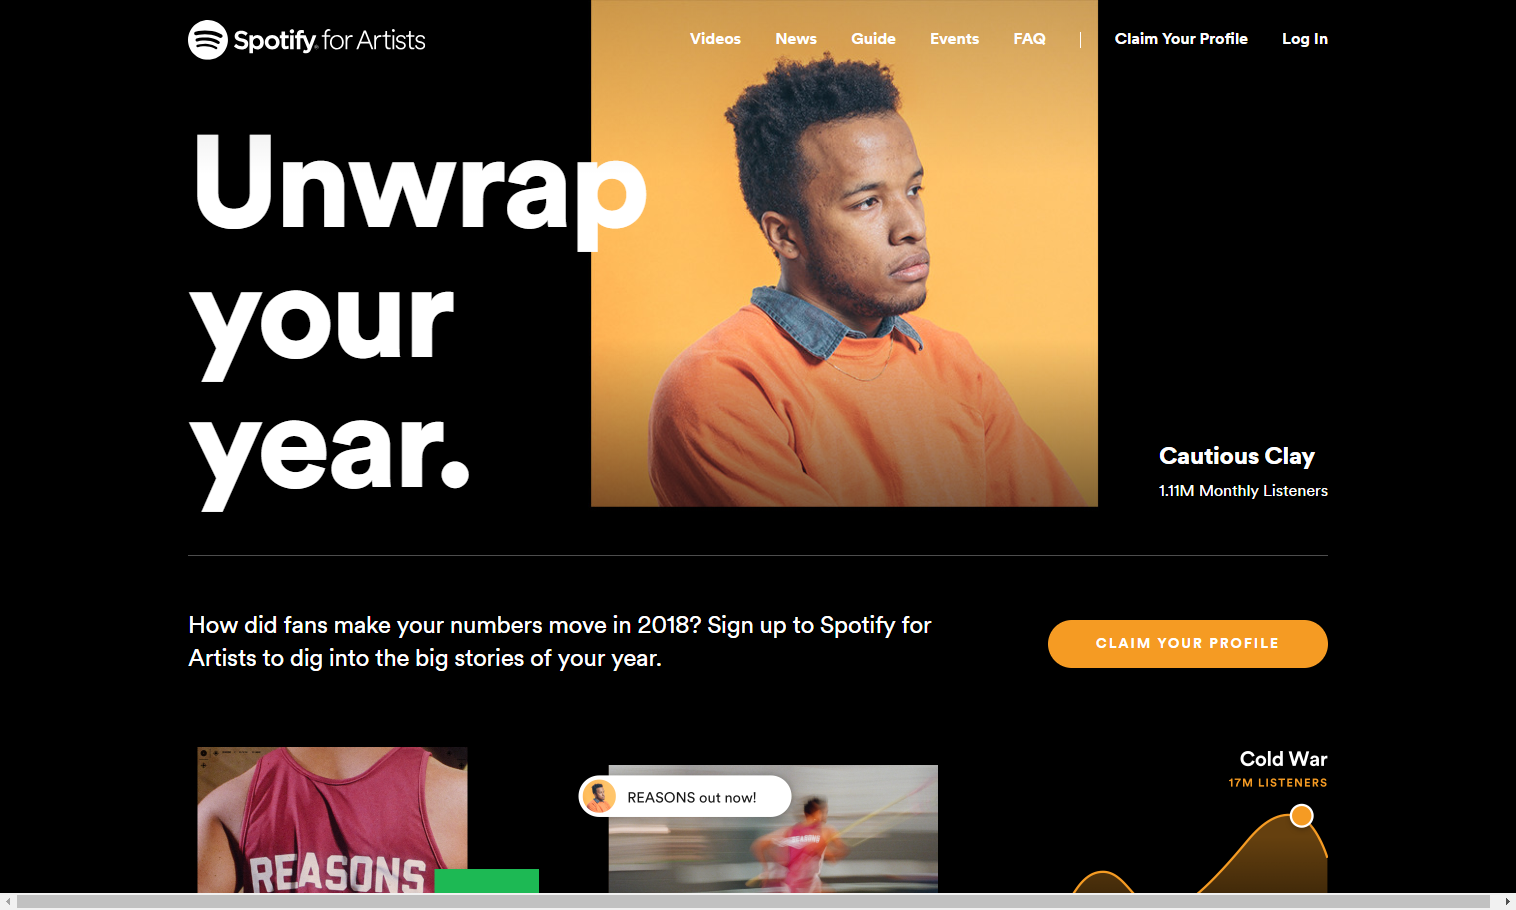 How To Get Your Spotify Artist Wrapped 2018 - DIXTRIT media